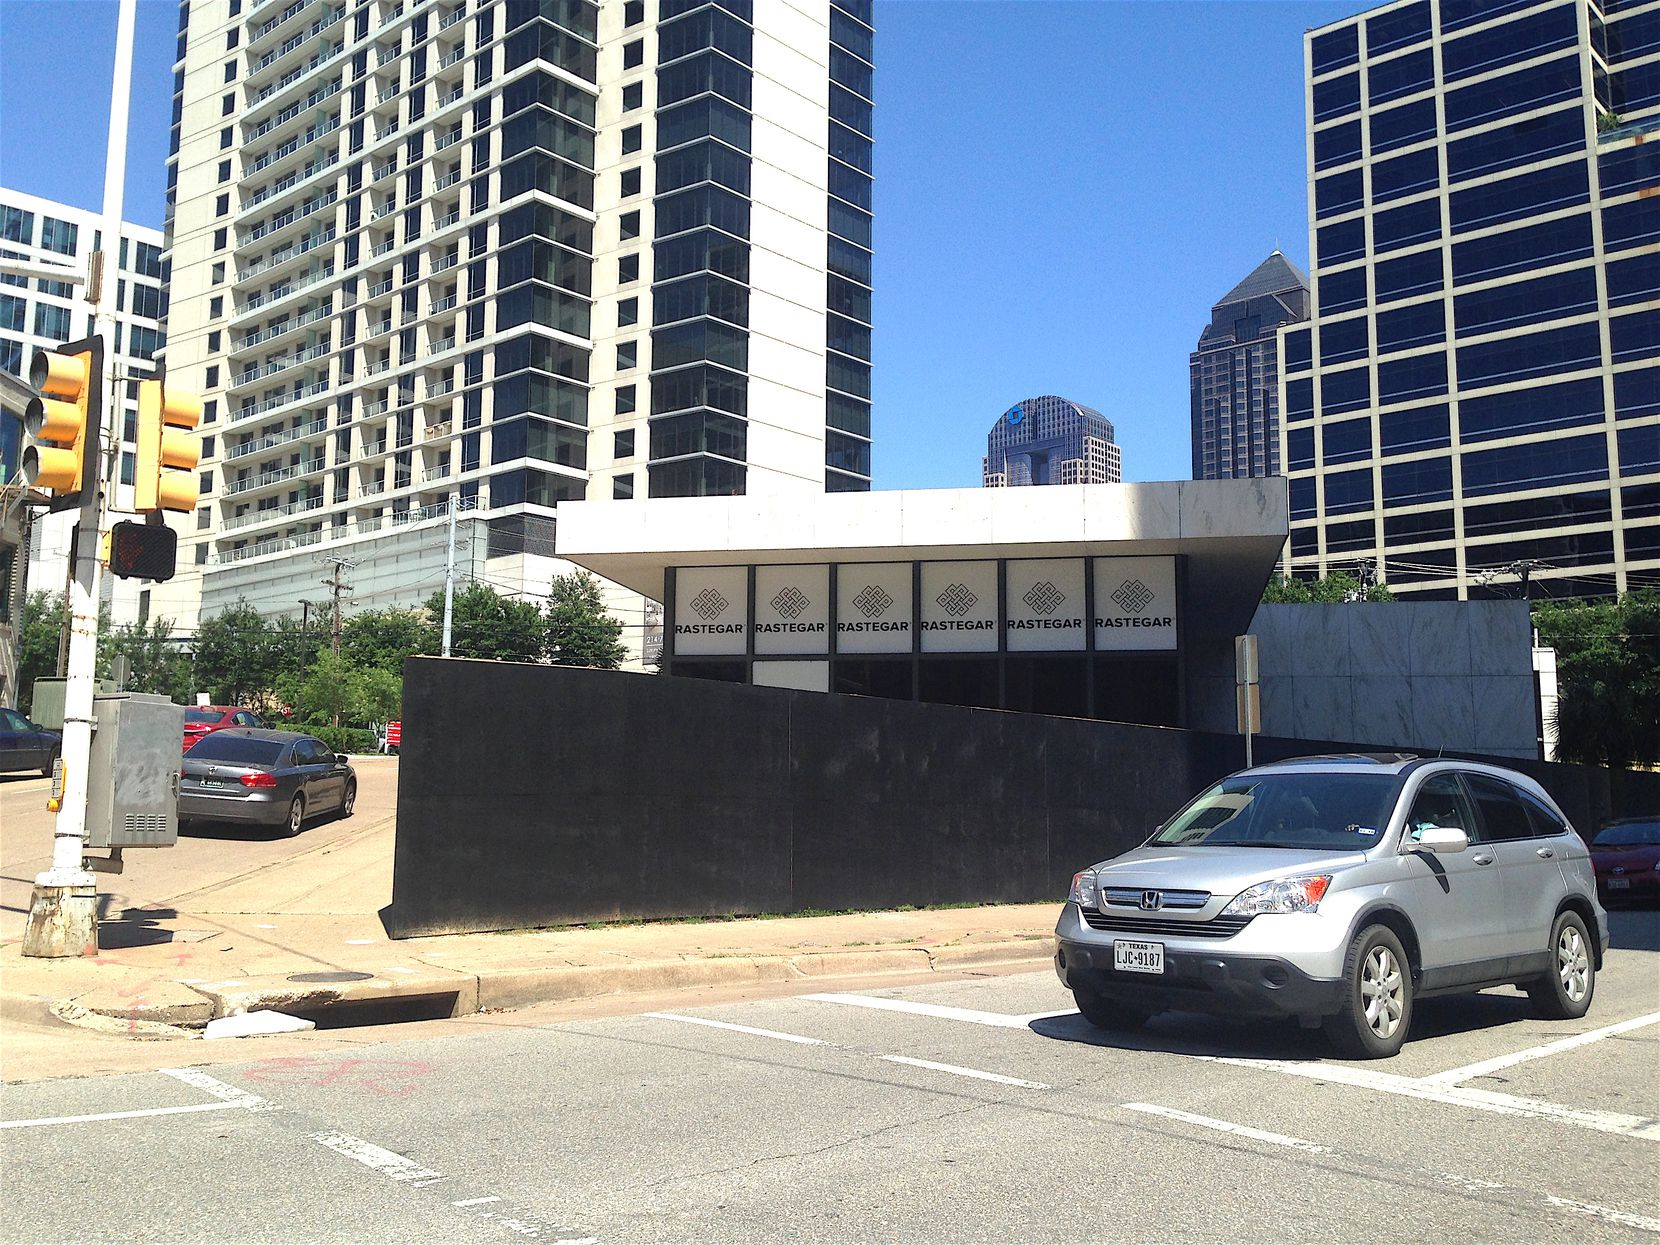 The site is just a block from Klyde Warren Park.